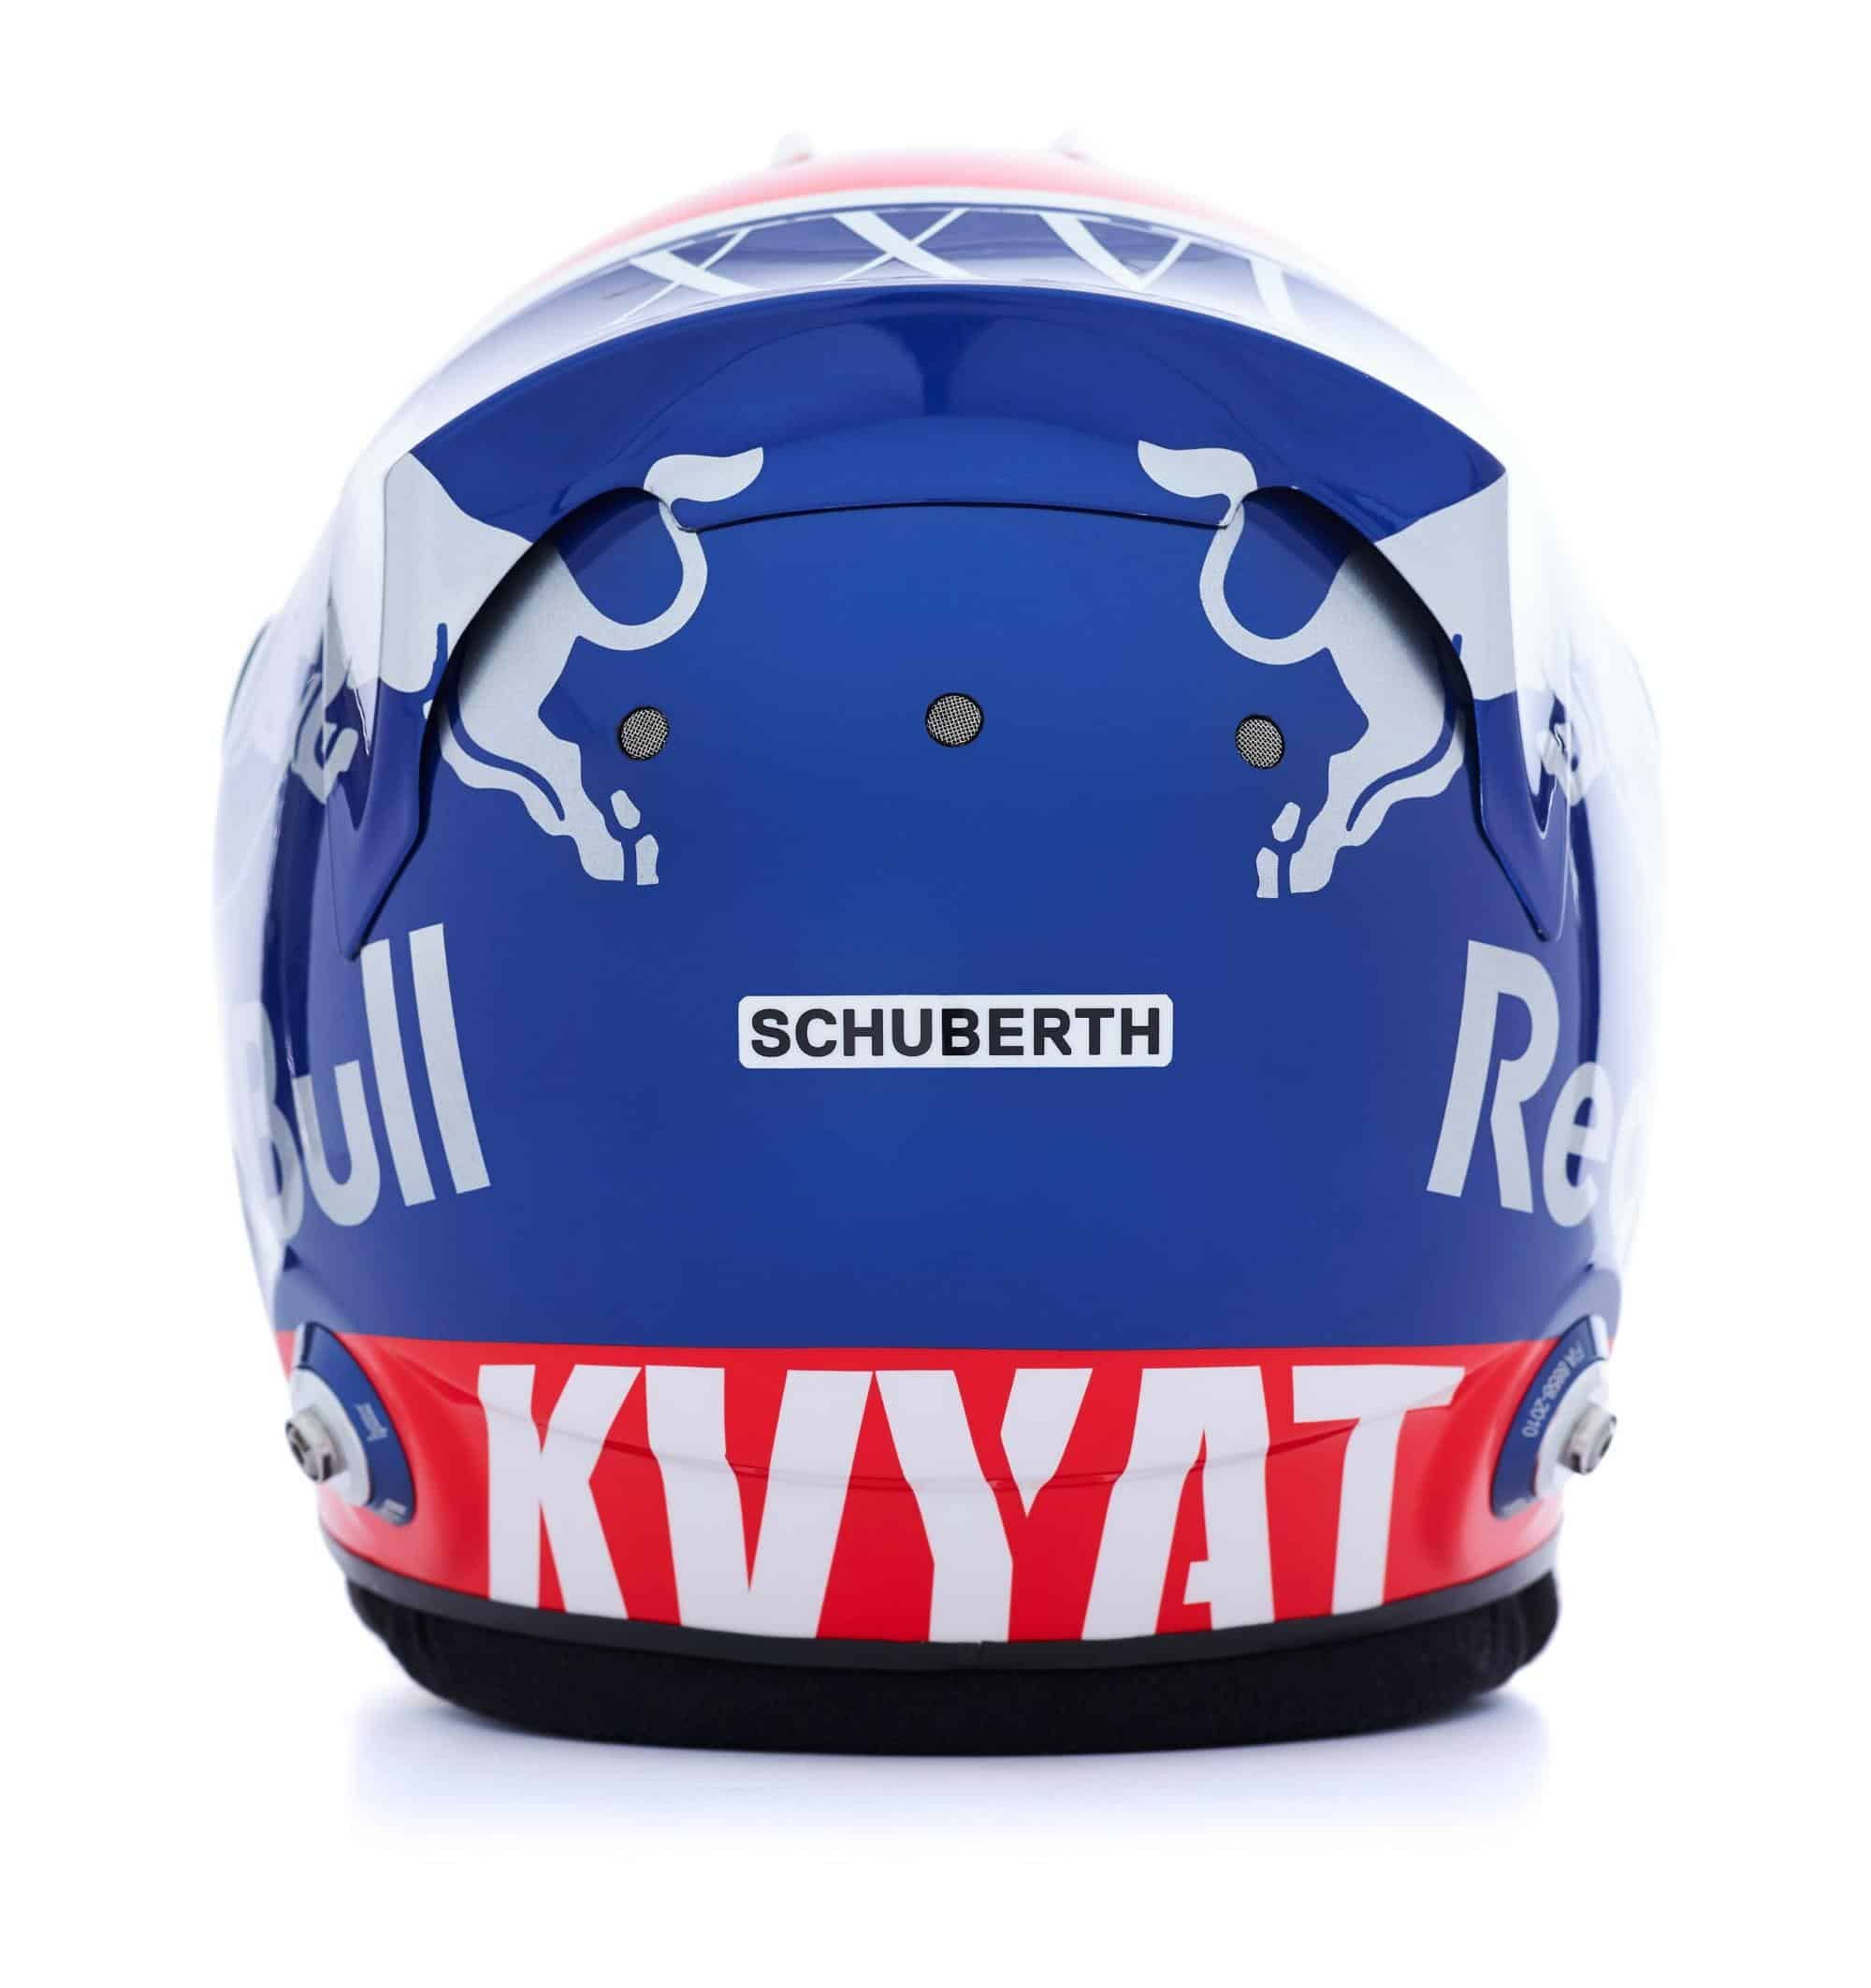 2019 F1 Daniil Kvyat helmet Toro Rosso Honda rear Photo Red Bull Edited by MAXF1net